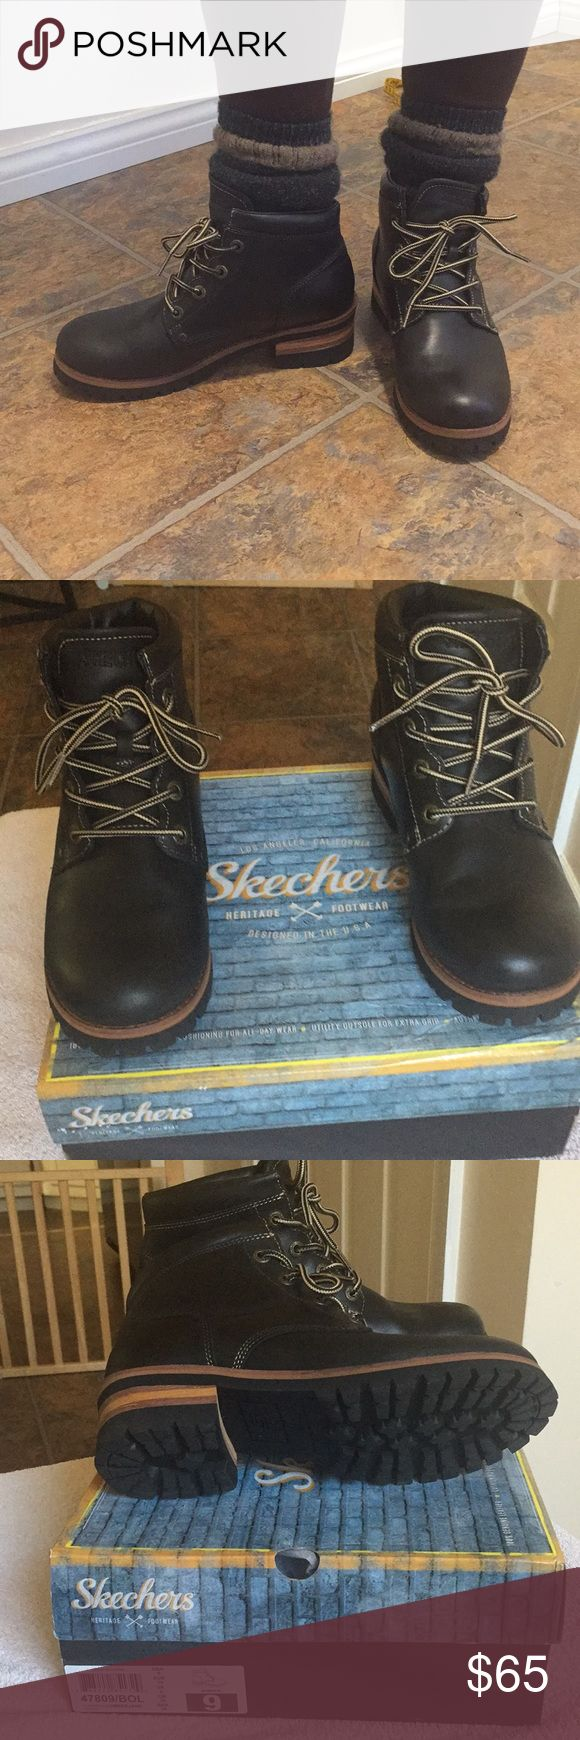 """Womens Sketchers Laramie 2 Lumberjack Boots These boots are so sharp. Fun and very comfortable even with thick wool socks. Black Oiled Smooth Leather 4 eye logger boot  Imported Leather, Rubber sole. Shaft measures approximately 5"""" from arch. Heel measures approximately 1.75"""" Platform measures approximately 0.75"""". Stacked rugged heel. I wore these about a half a dozen times. Has some wear but since they are oiled these will come out. Barely noticeable! Sketchers Shoes Ankle Boots & Booties"""